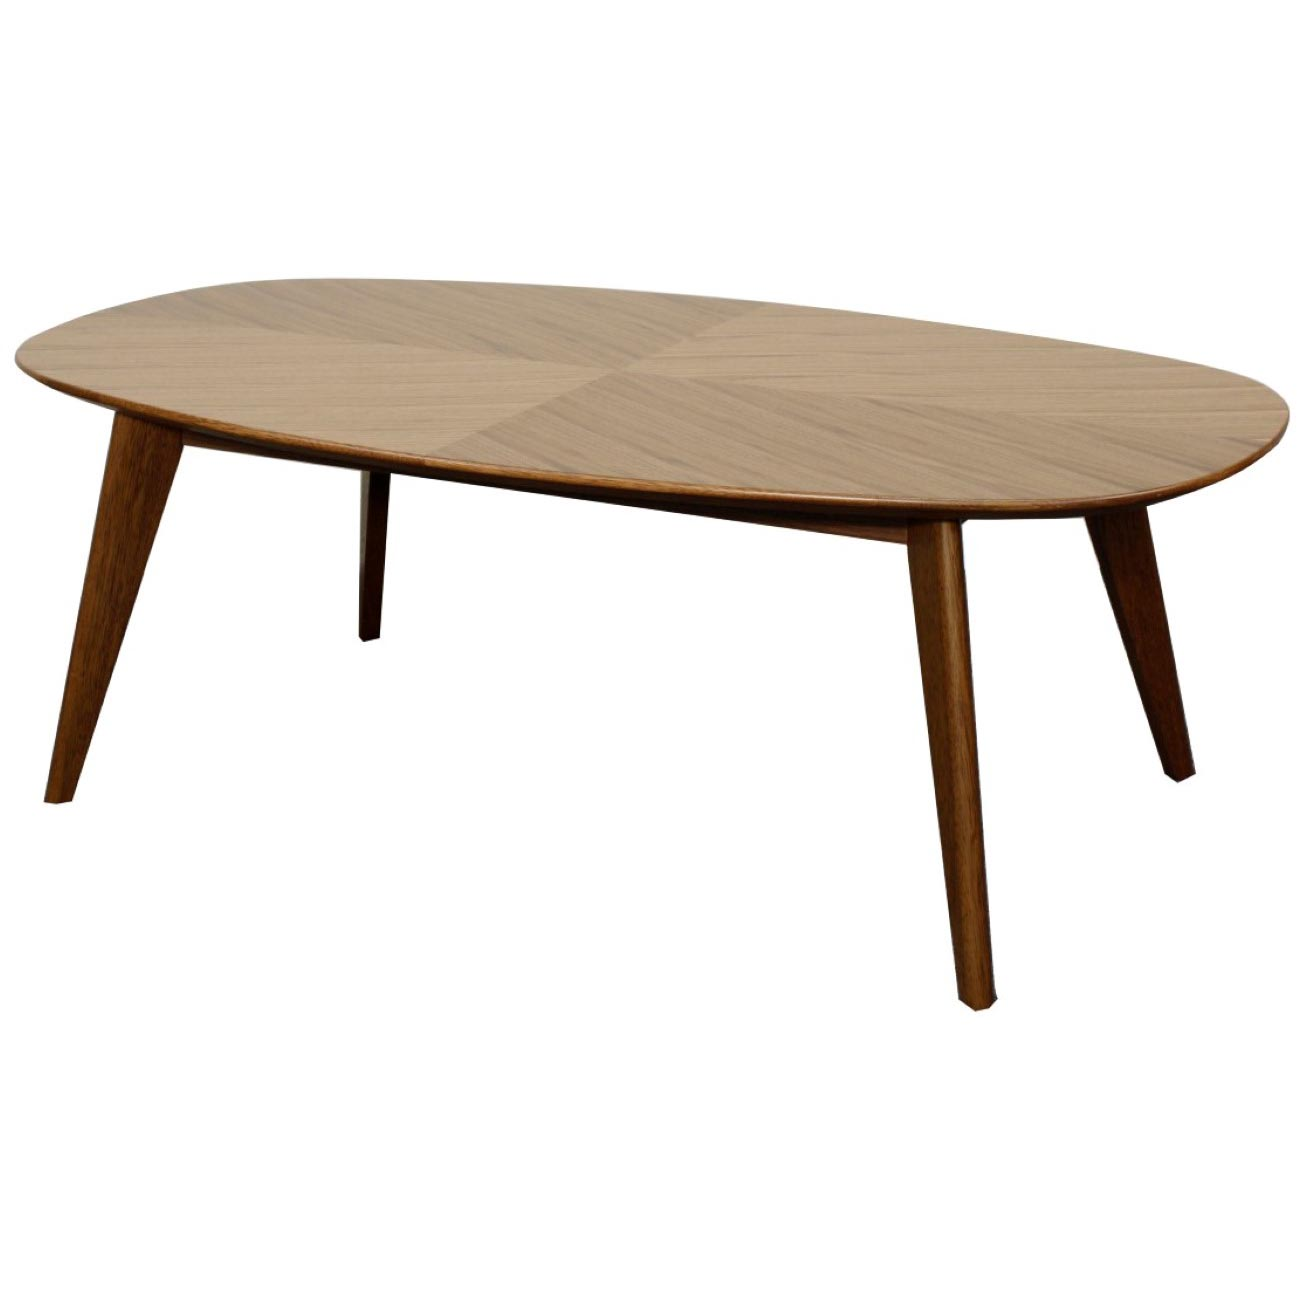 Teak Coffee Table South Africa: Milano Coffee Table, Walnut